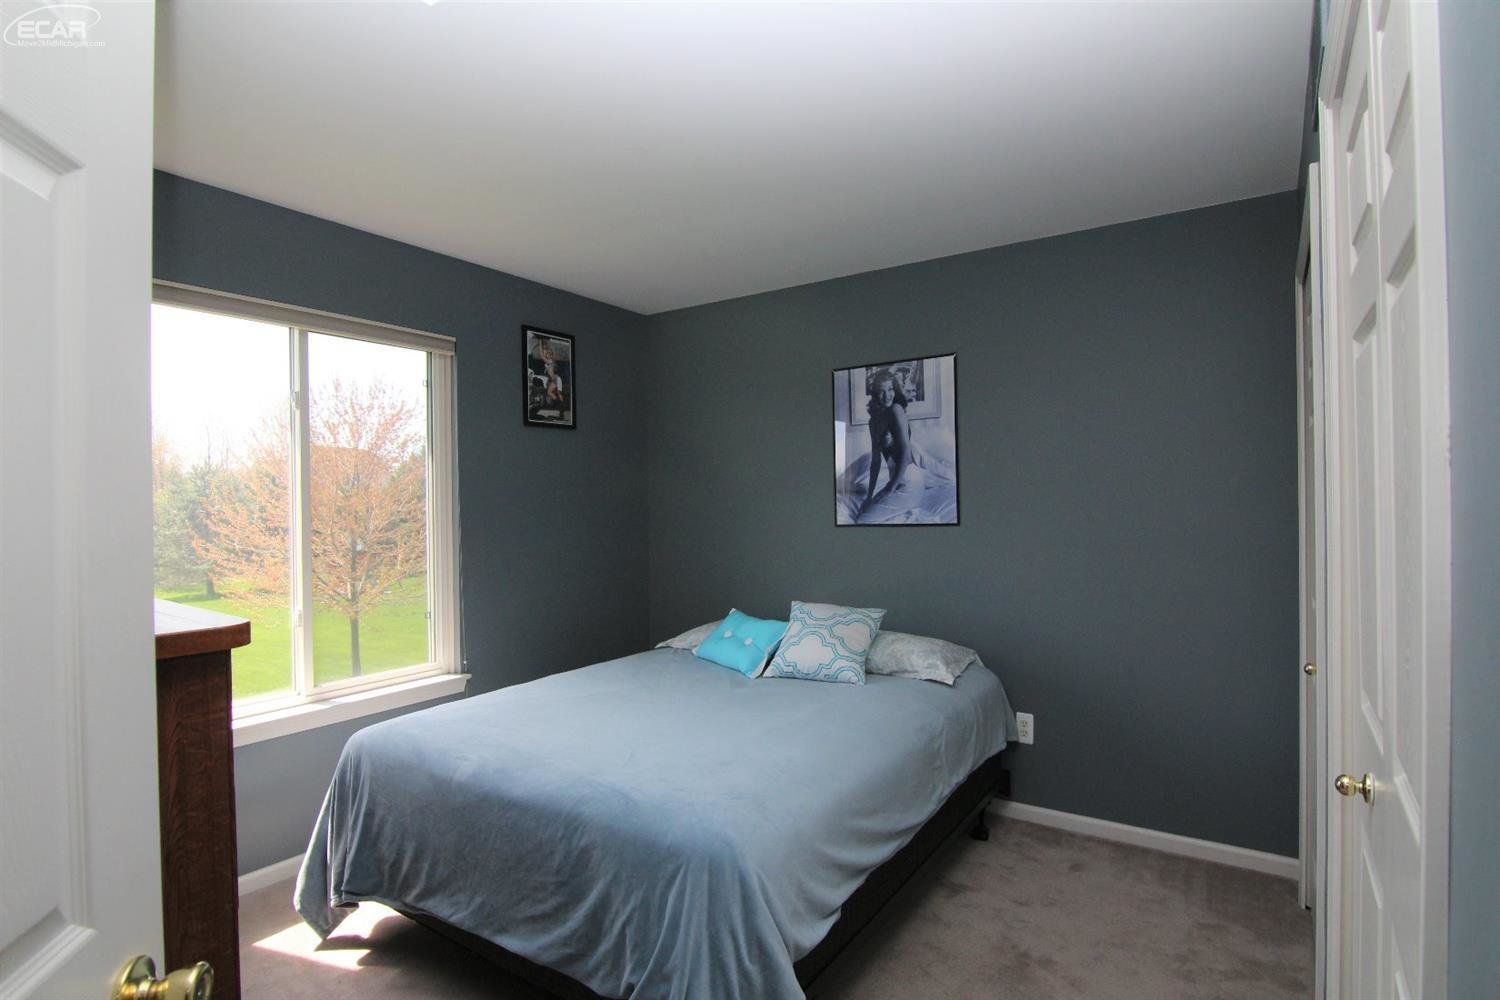 Best 12438 Peabody Bedroom 2 Edconstable Com With Pictures